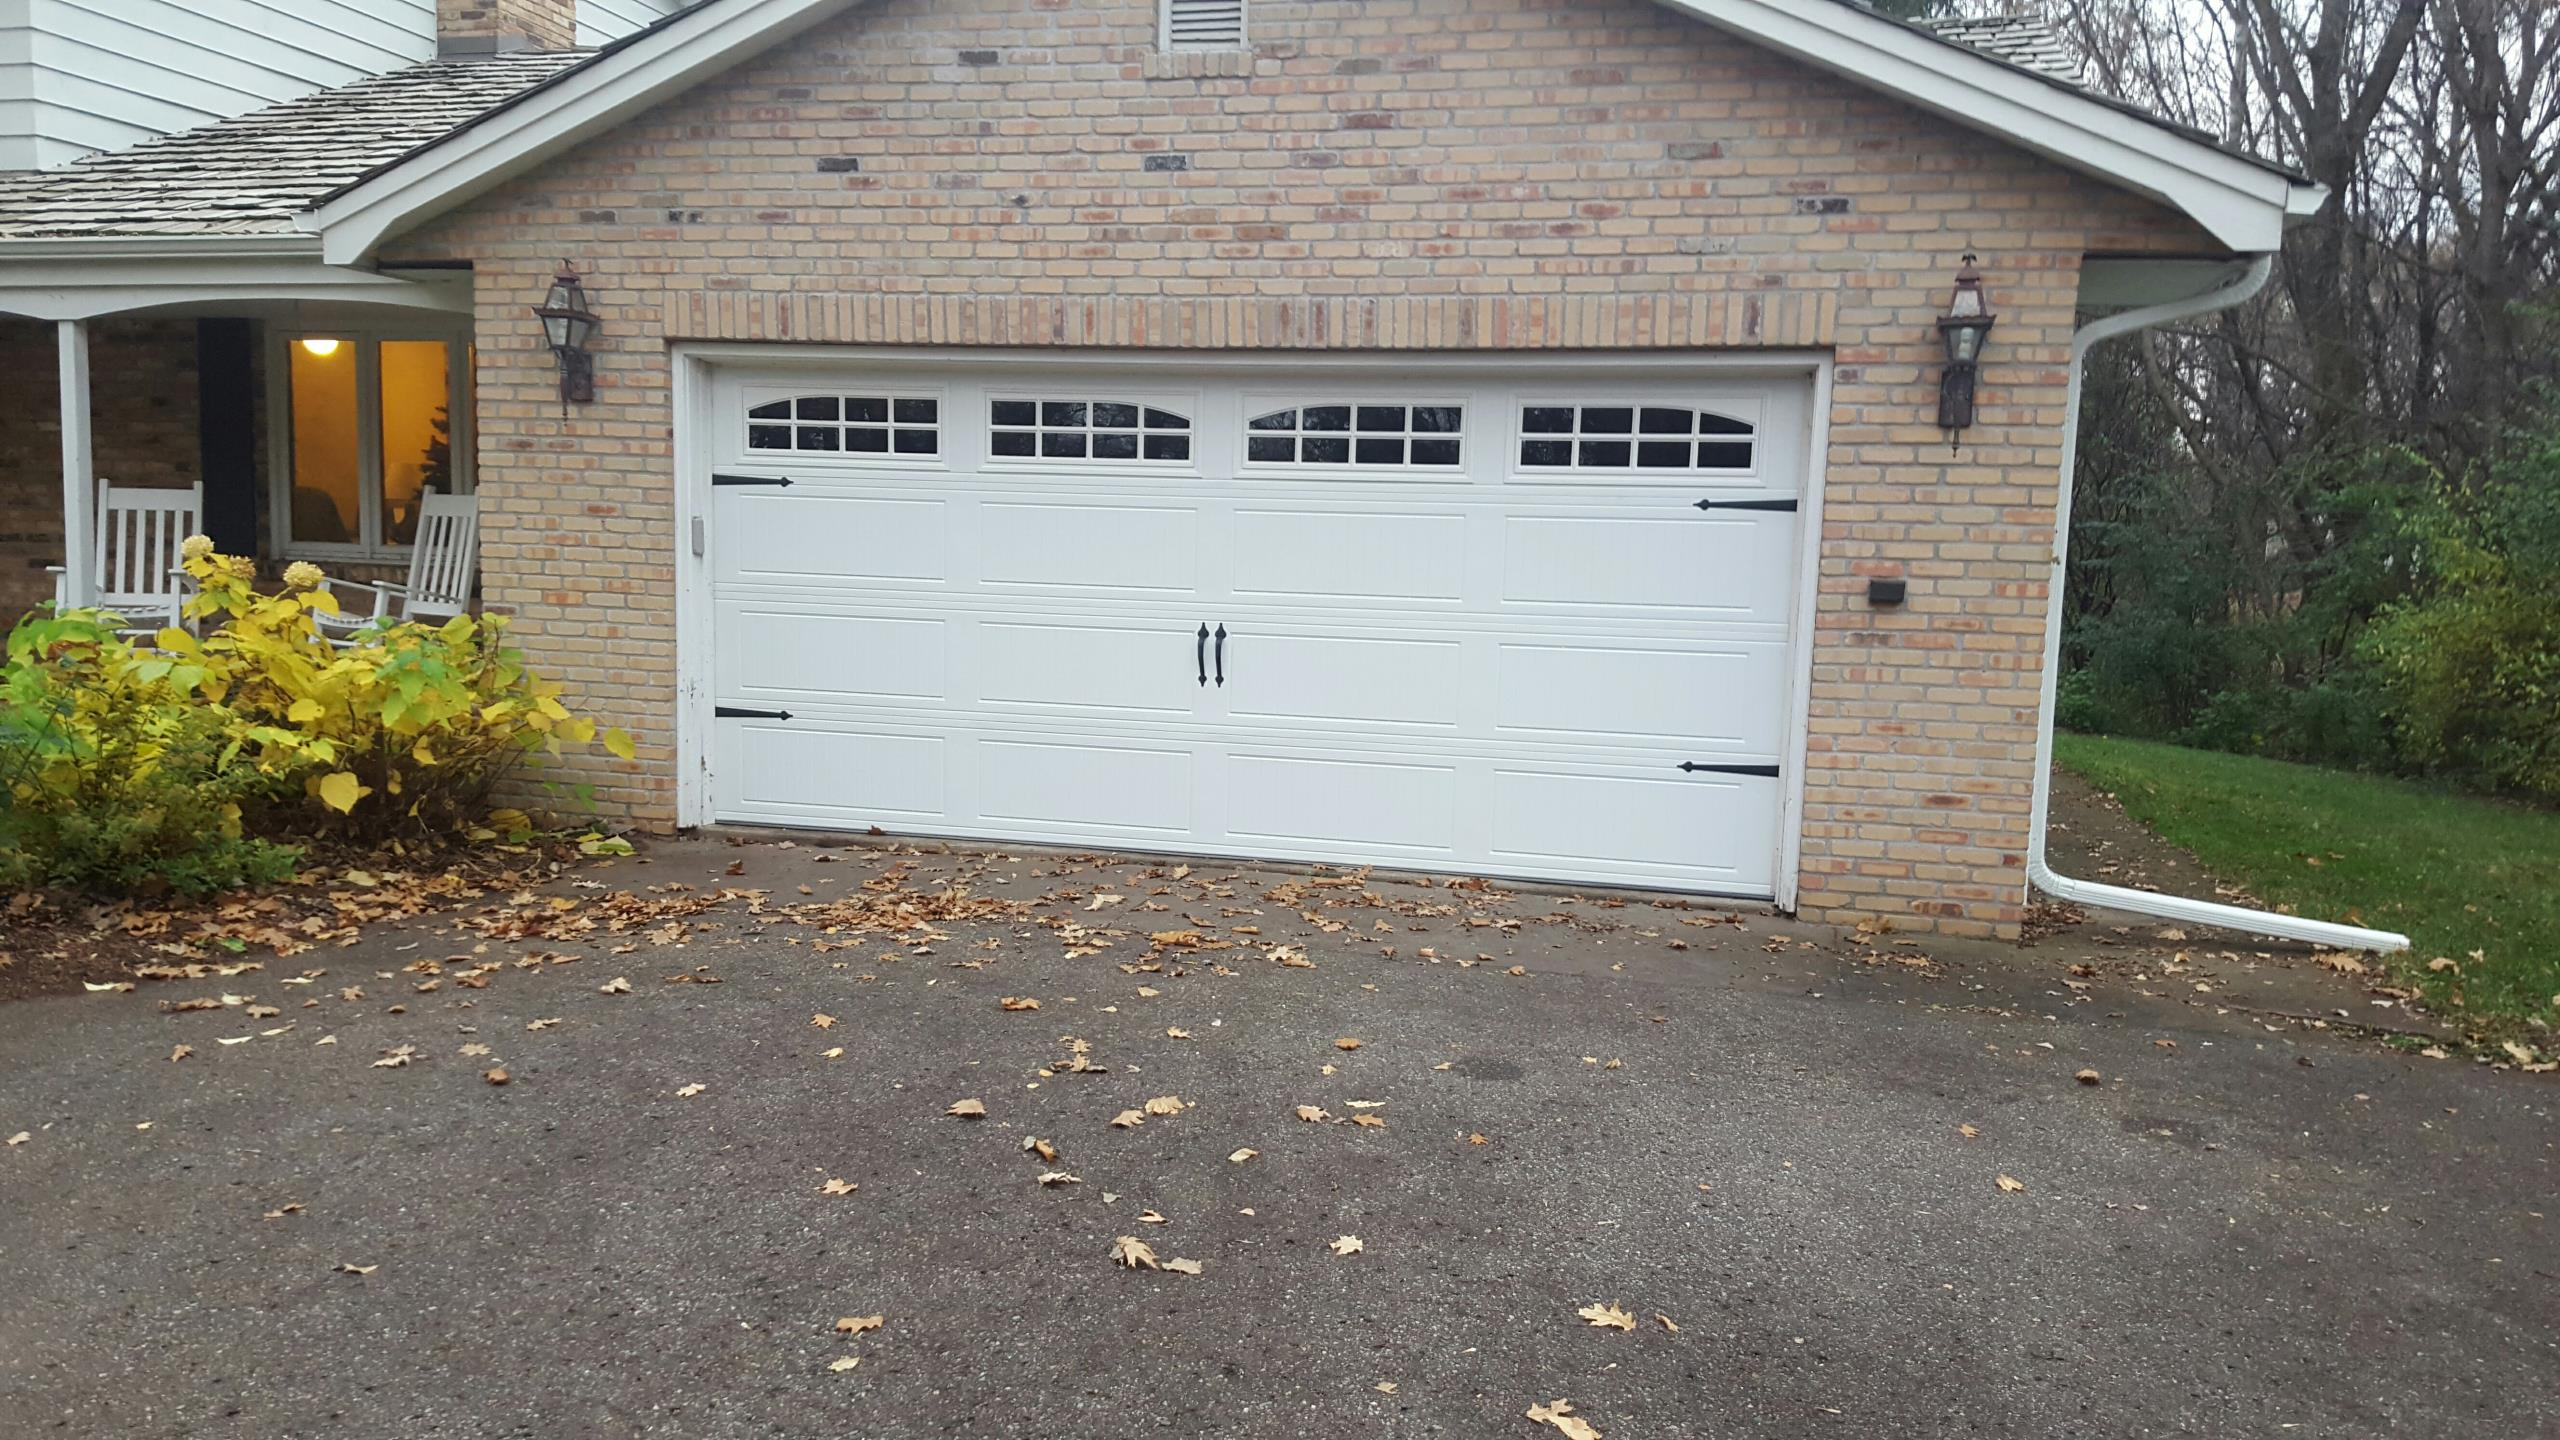 North Oaks, MN - Jeremy installed 16 by 9 garage door